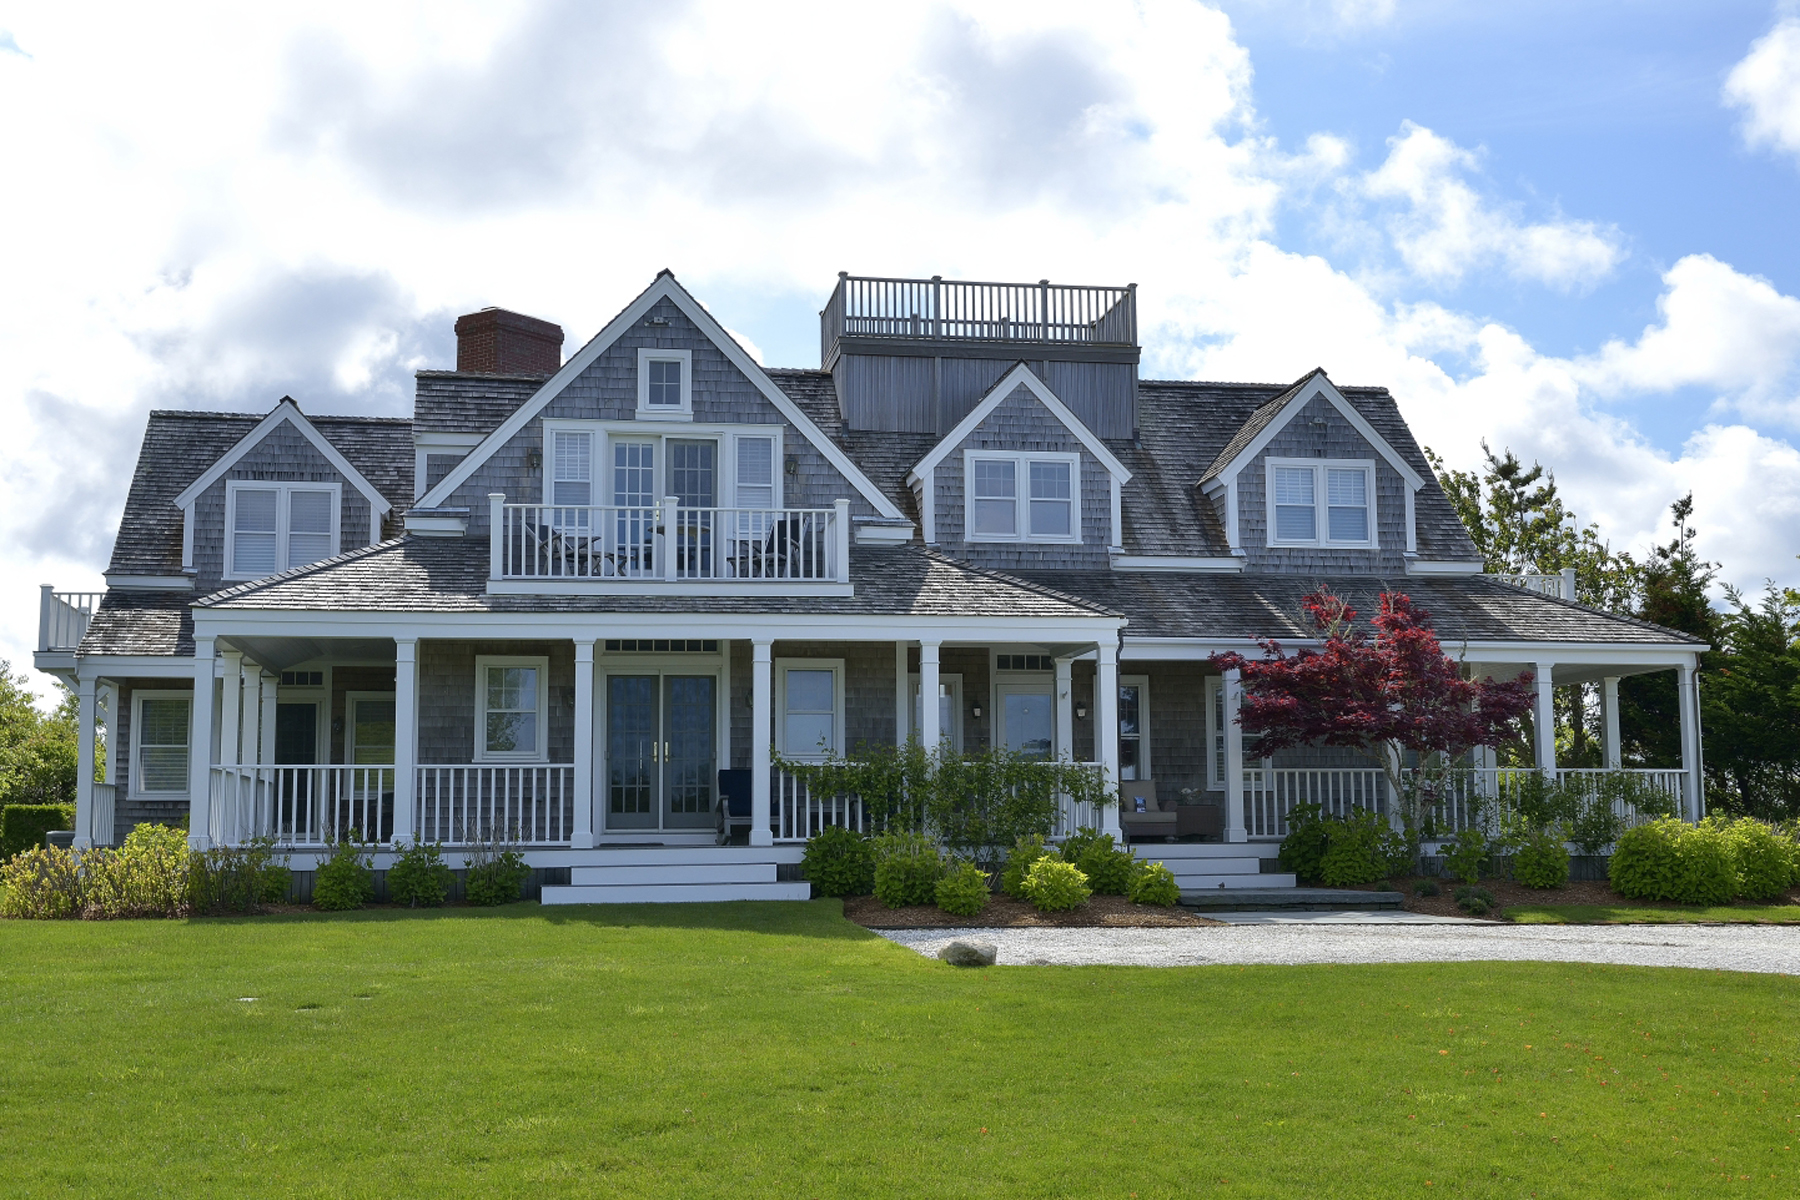 단독 가정 주택 용 매매 에 Exceptional Family Compound and Gorgeous Ocean Views 60 Squam Road Nantucket, 매사추세츠, 02554 미국